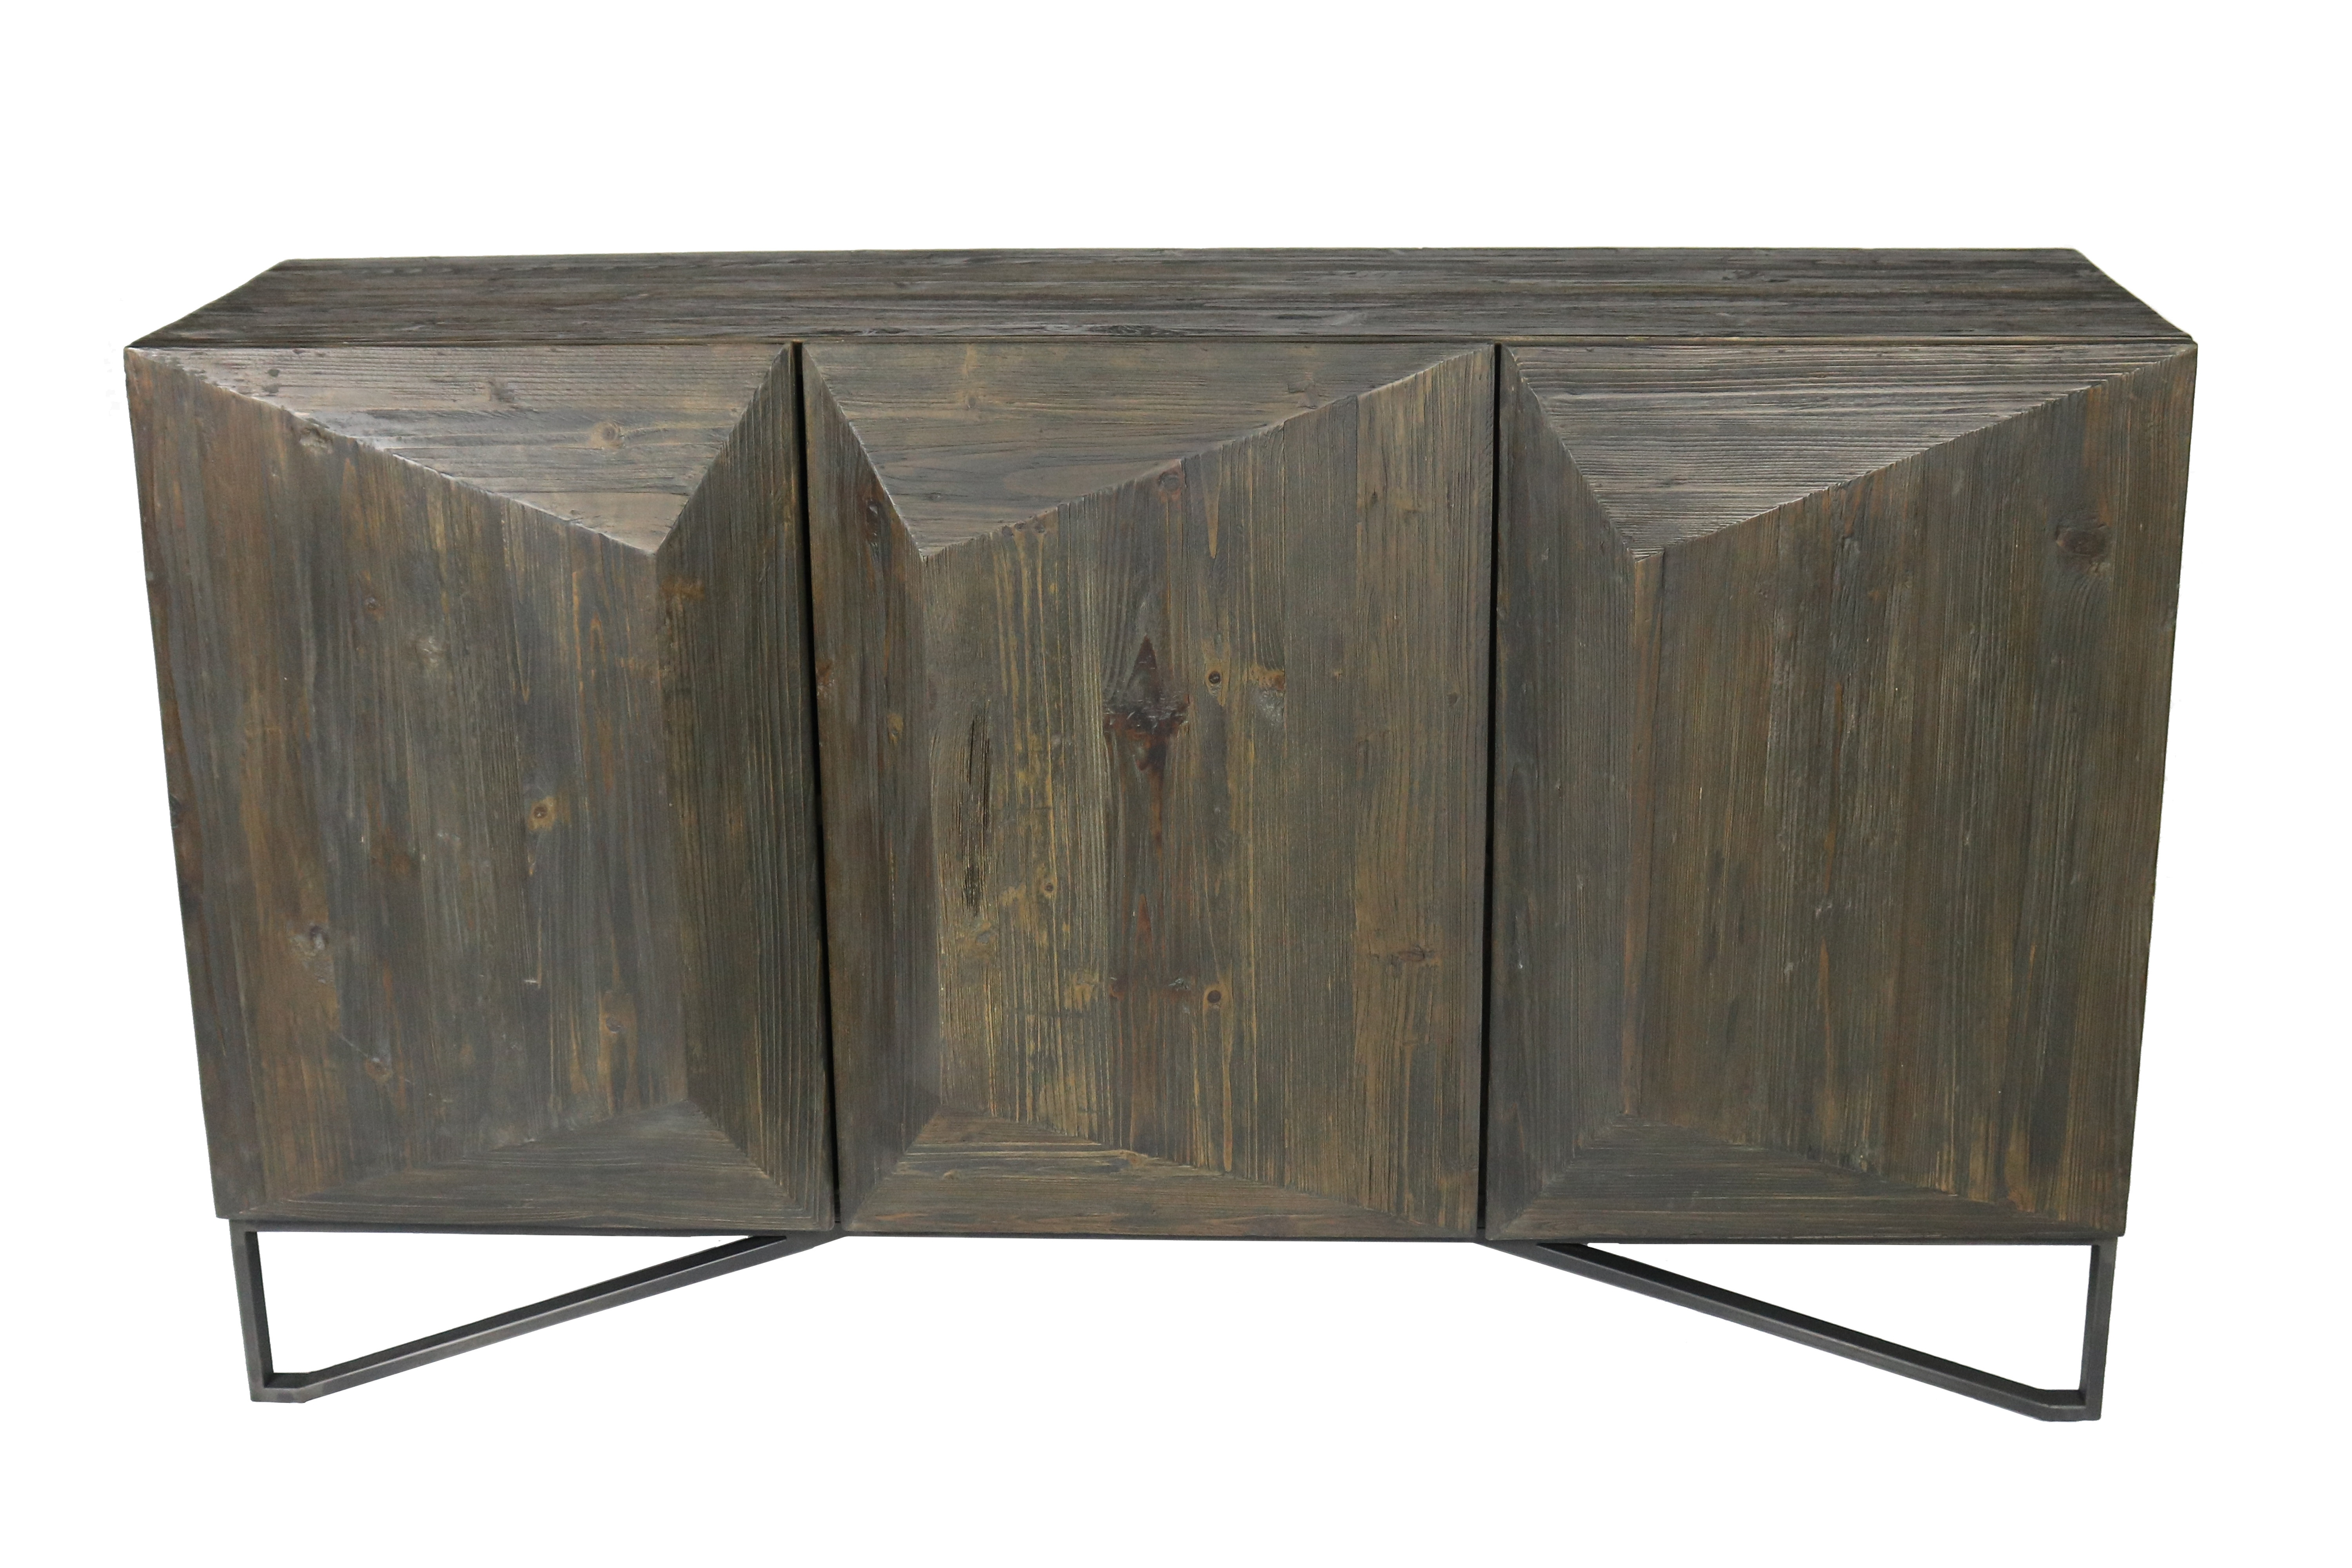 Foundry Select Amundson 3 Door Sideboard | Wayfair Intended For Recent Reclaimed Pine & Iron 4 Door Sideboards (View 13 of 20)